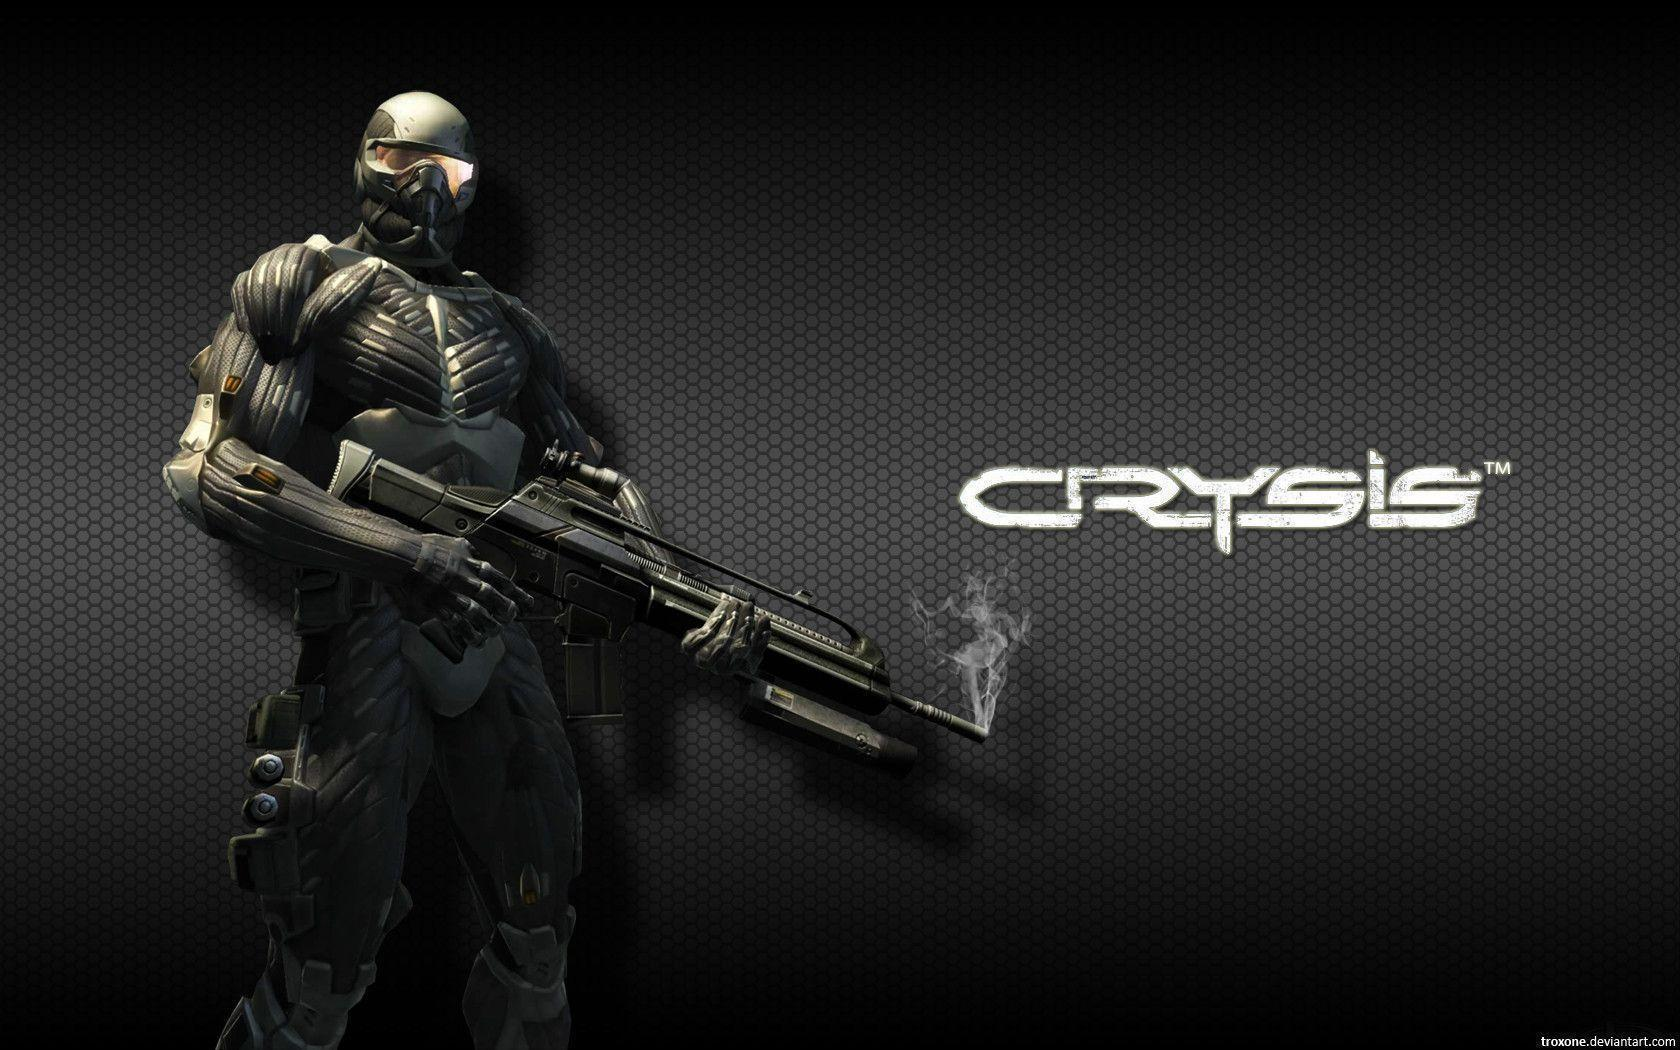 crysis 4 wallpaper hd-#12